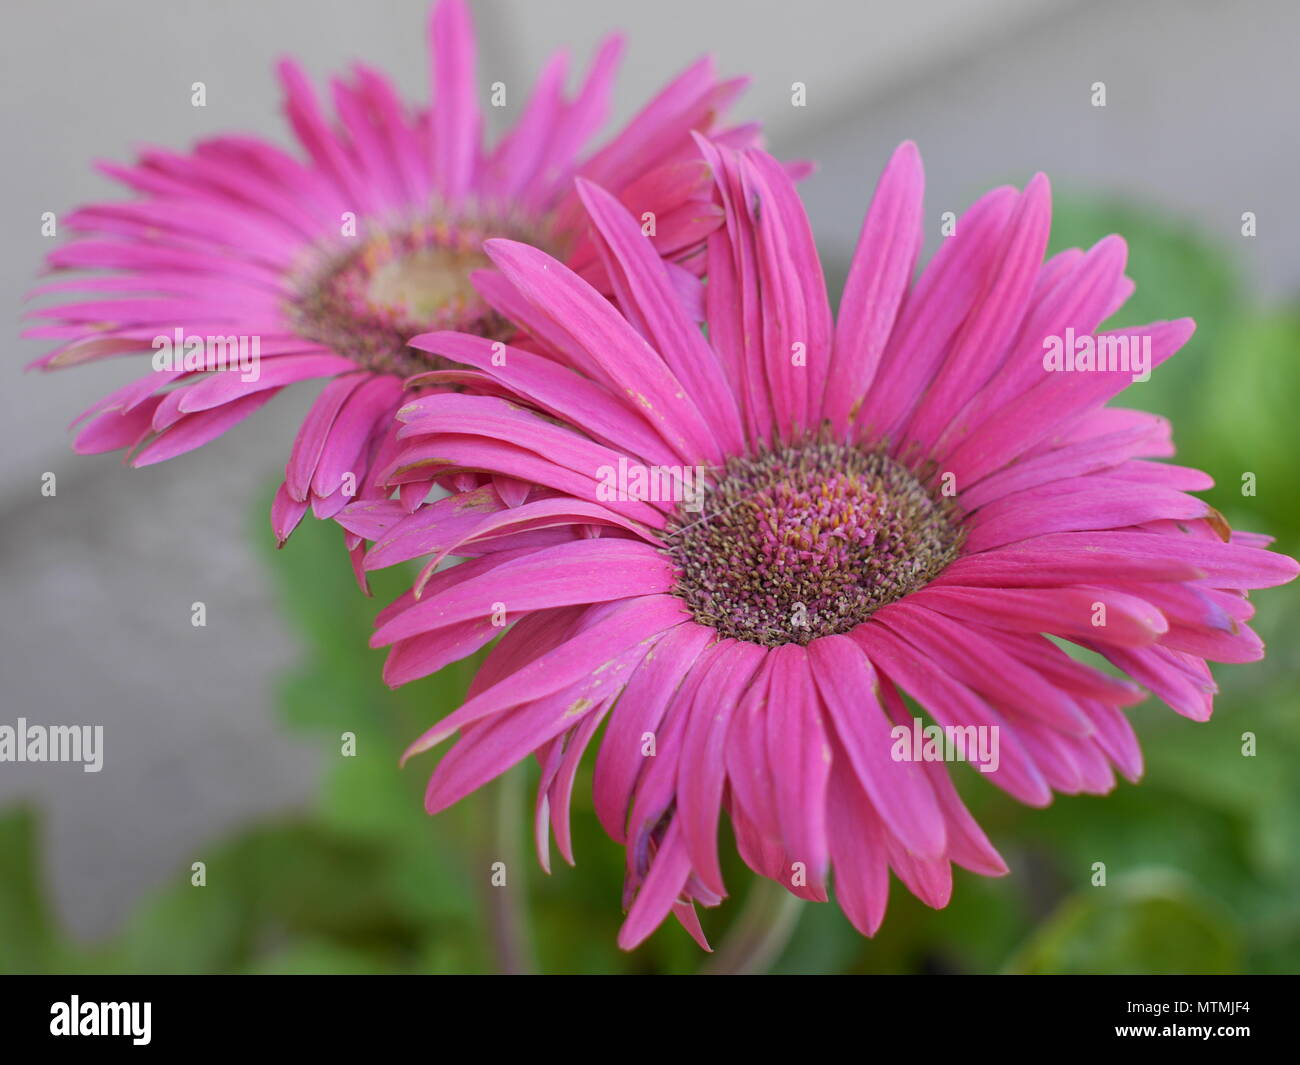 Giant Pink Daisies Stock Photo 187309000 Alamy